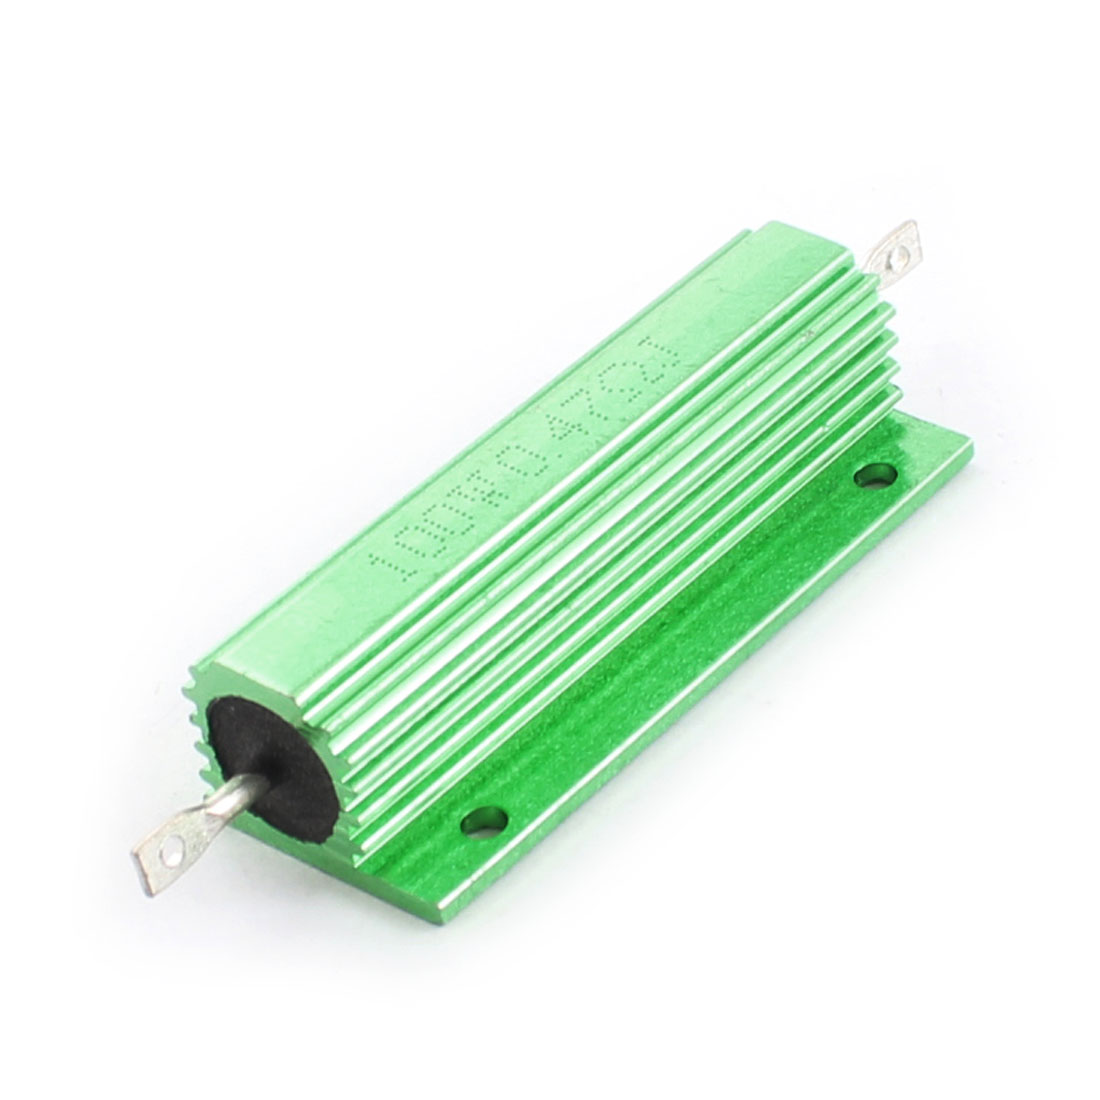 100W 0.47 Ohm Axial Wirewound Aluminum Clad Resistor Green